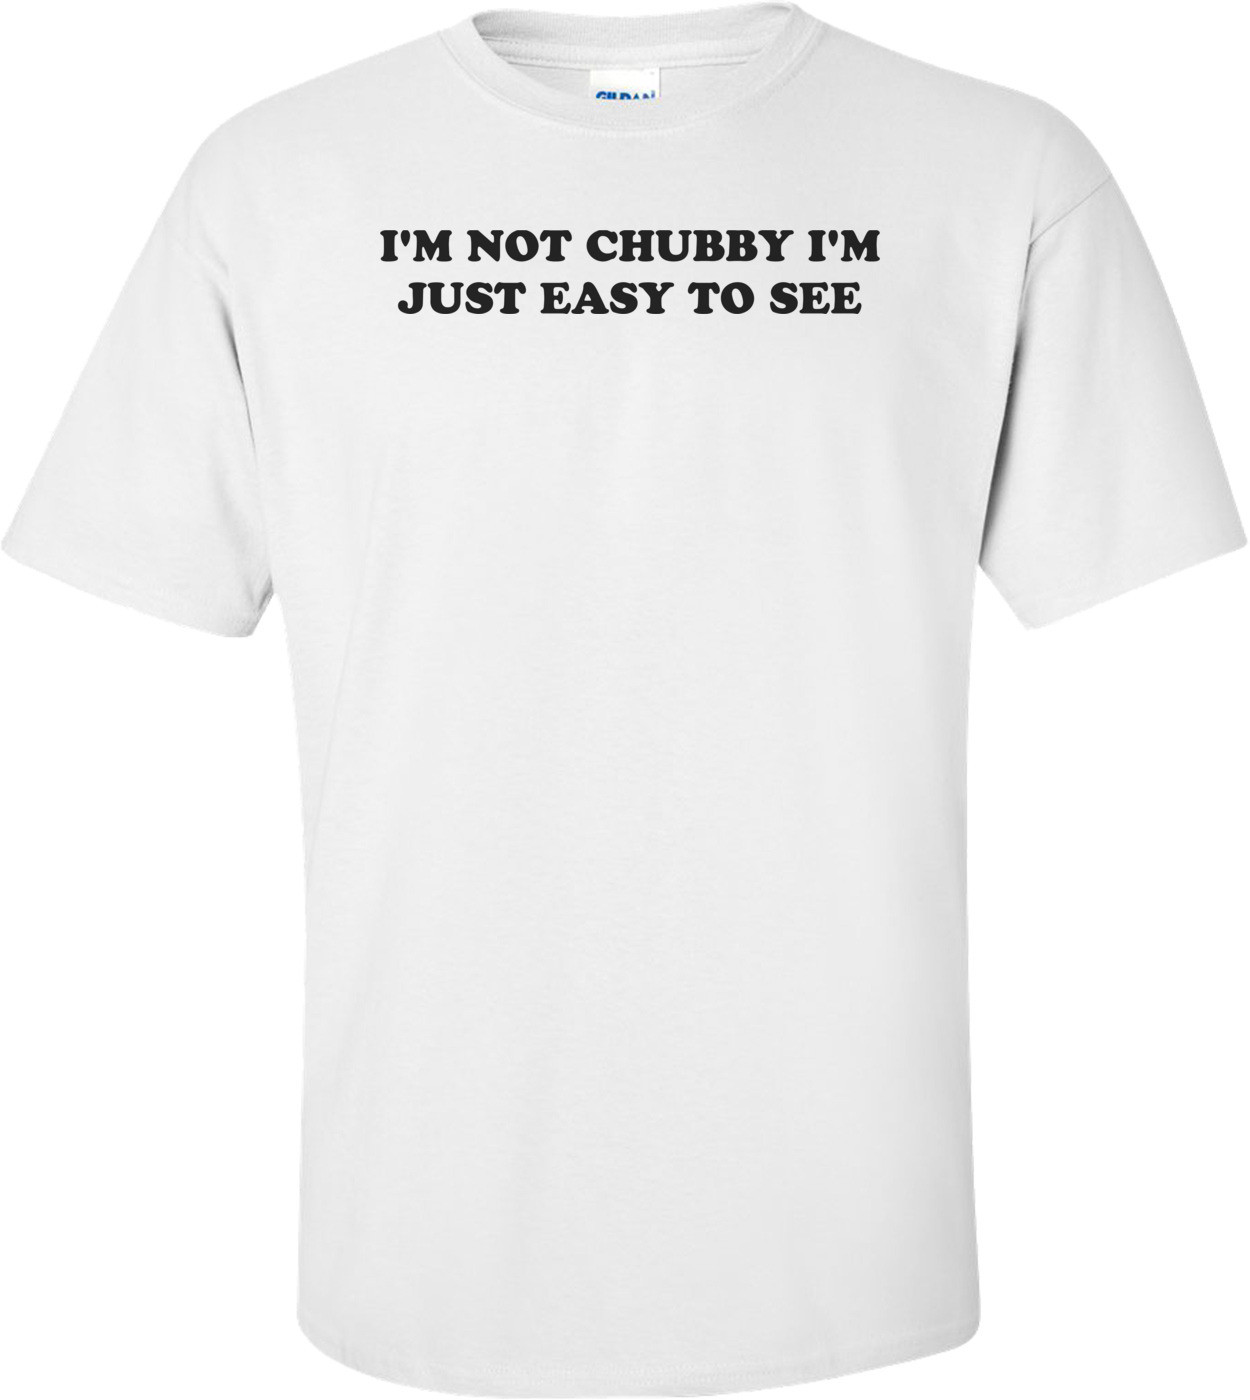 I'M NOT CHUBBY I'M JUST EASY TO SEE Shirt